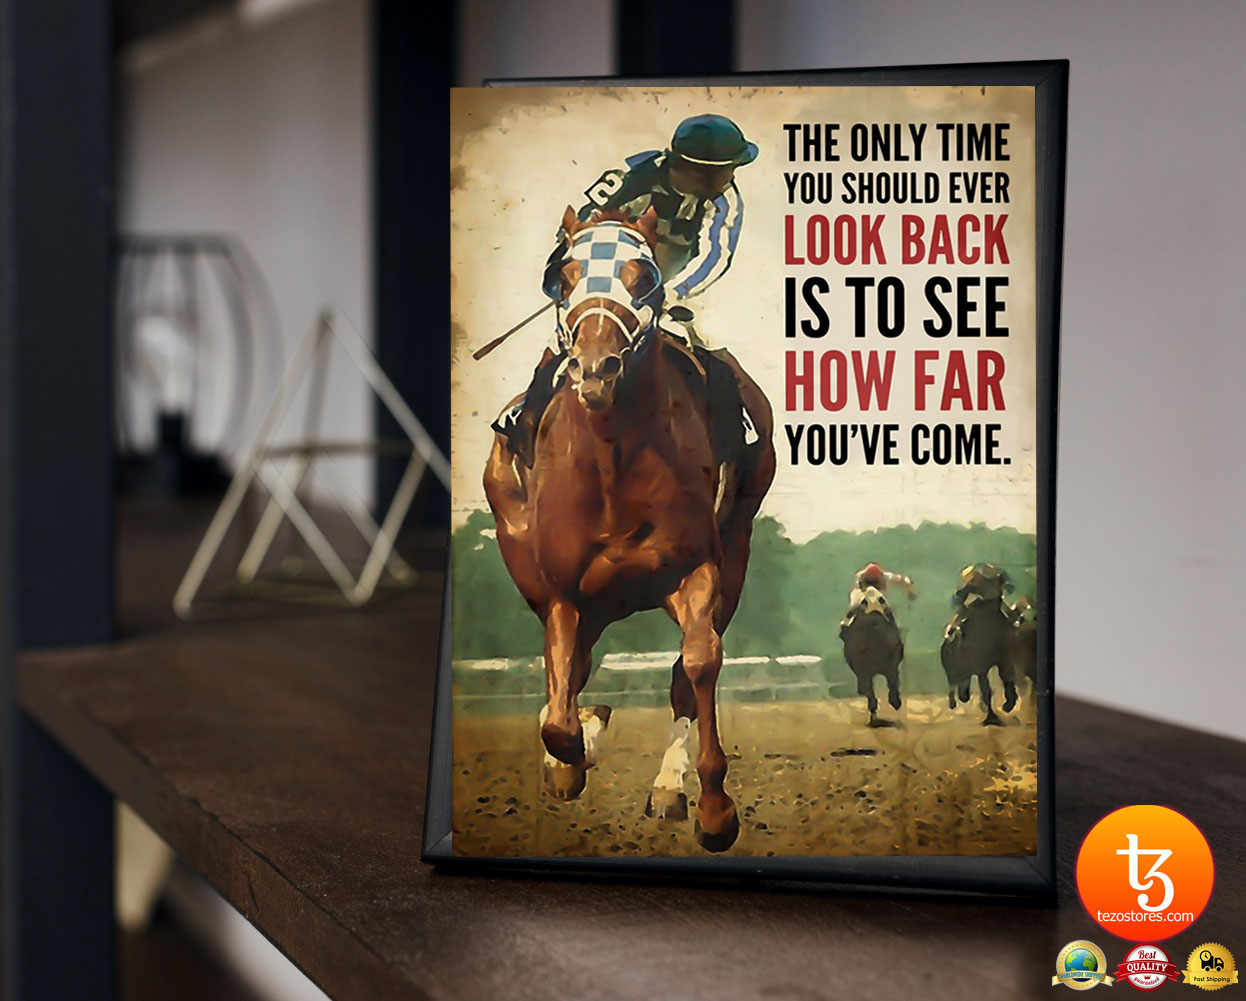 Racing horse The only time you should ever look back is to see how far you've come poster 23